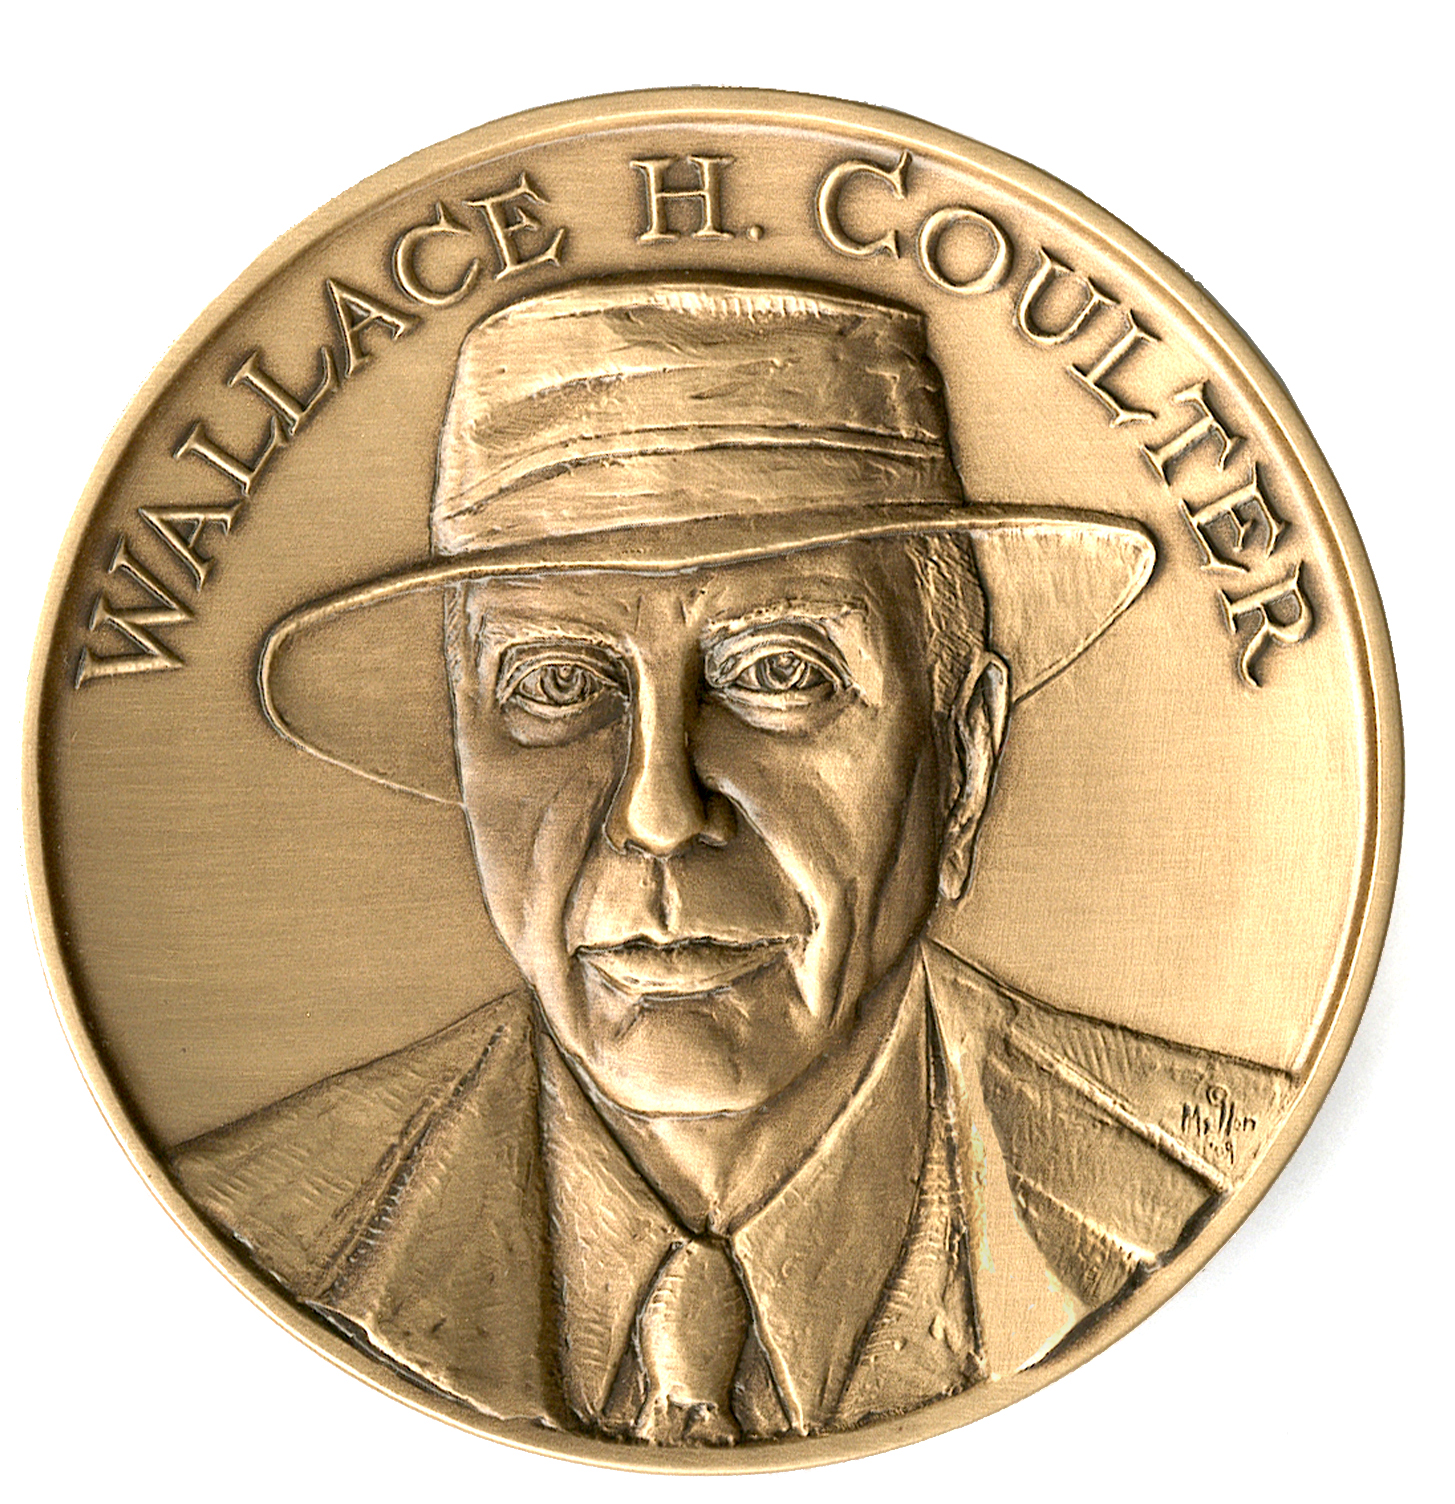 Wallace-H-Coulter-Award-for-Lifetime-Achievement-in-Hematology.jpg